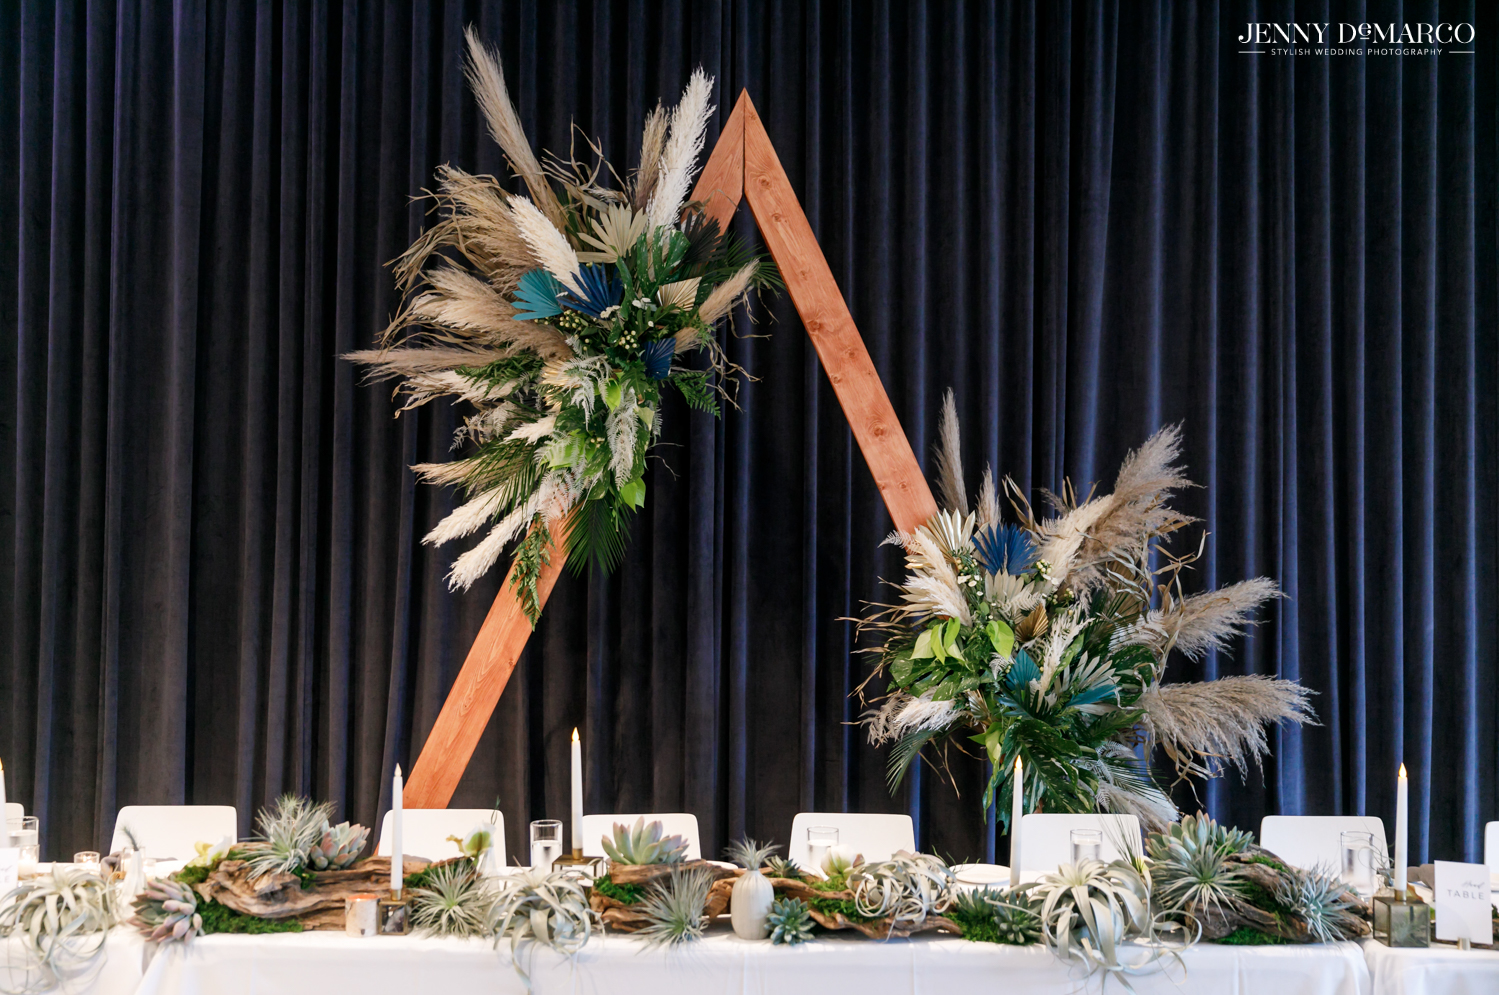 Reception decorations of wooden triangular piece with feathered detailing and important persons table